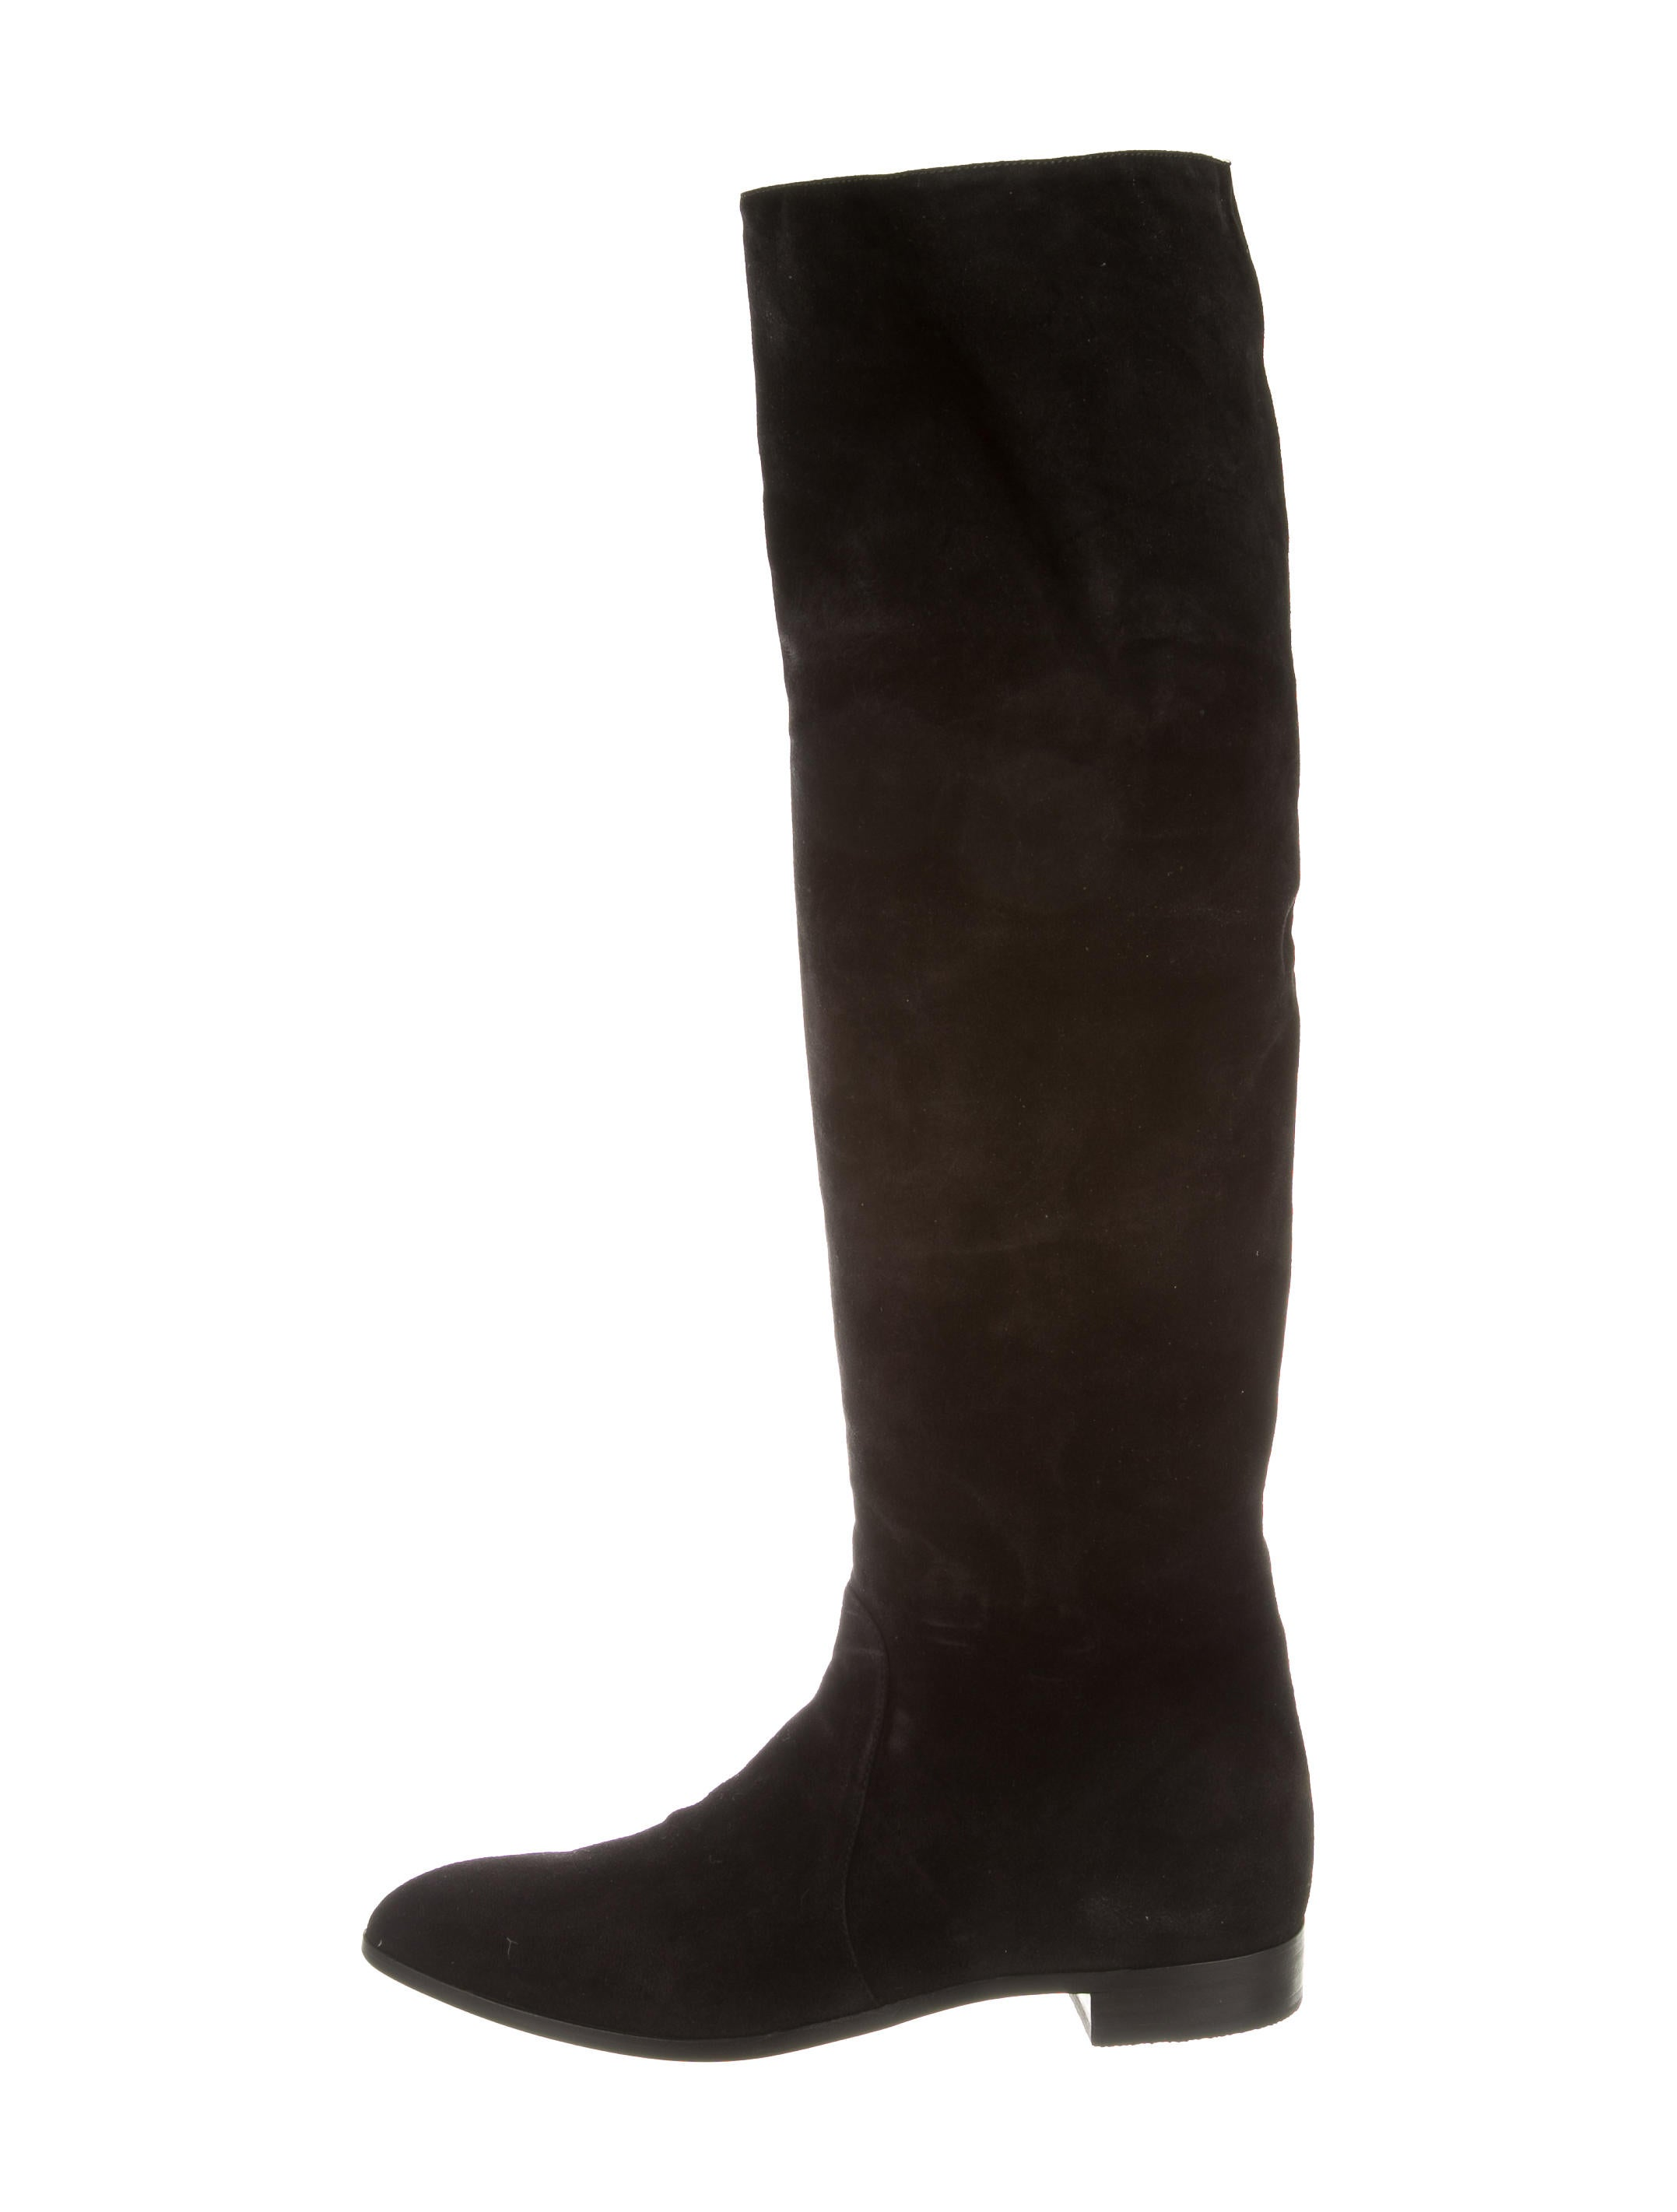 prada suede the knee boots shoes pra116497 the